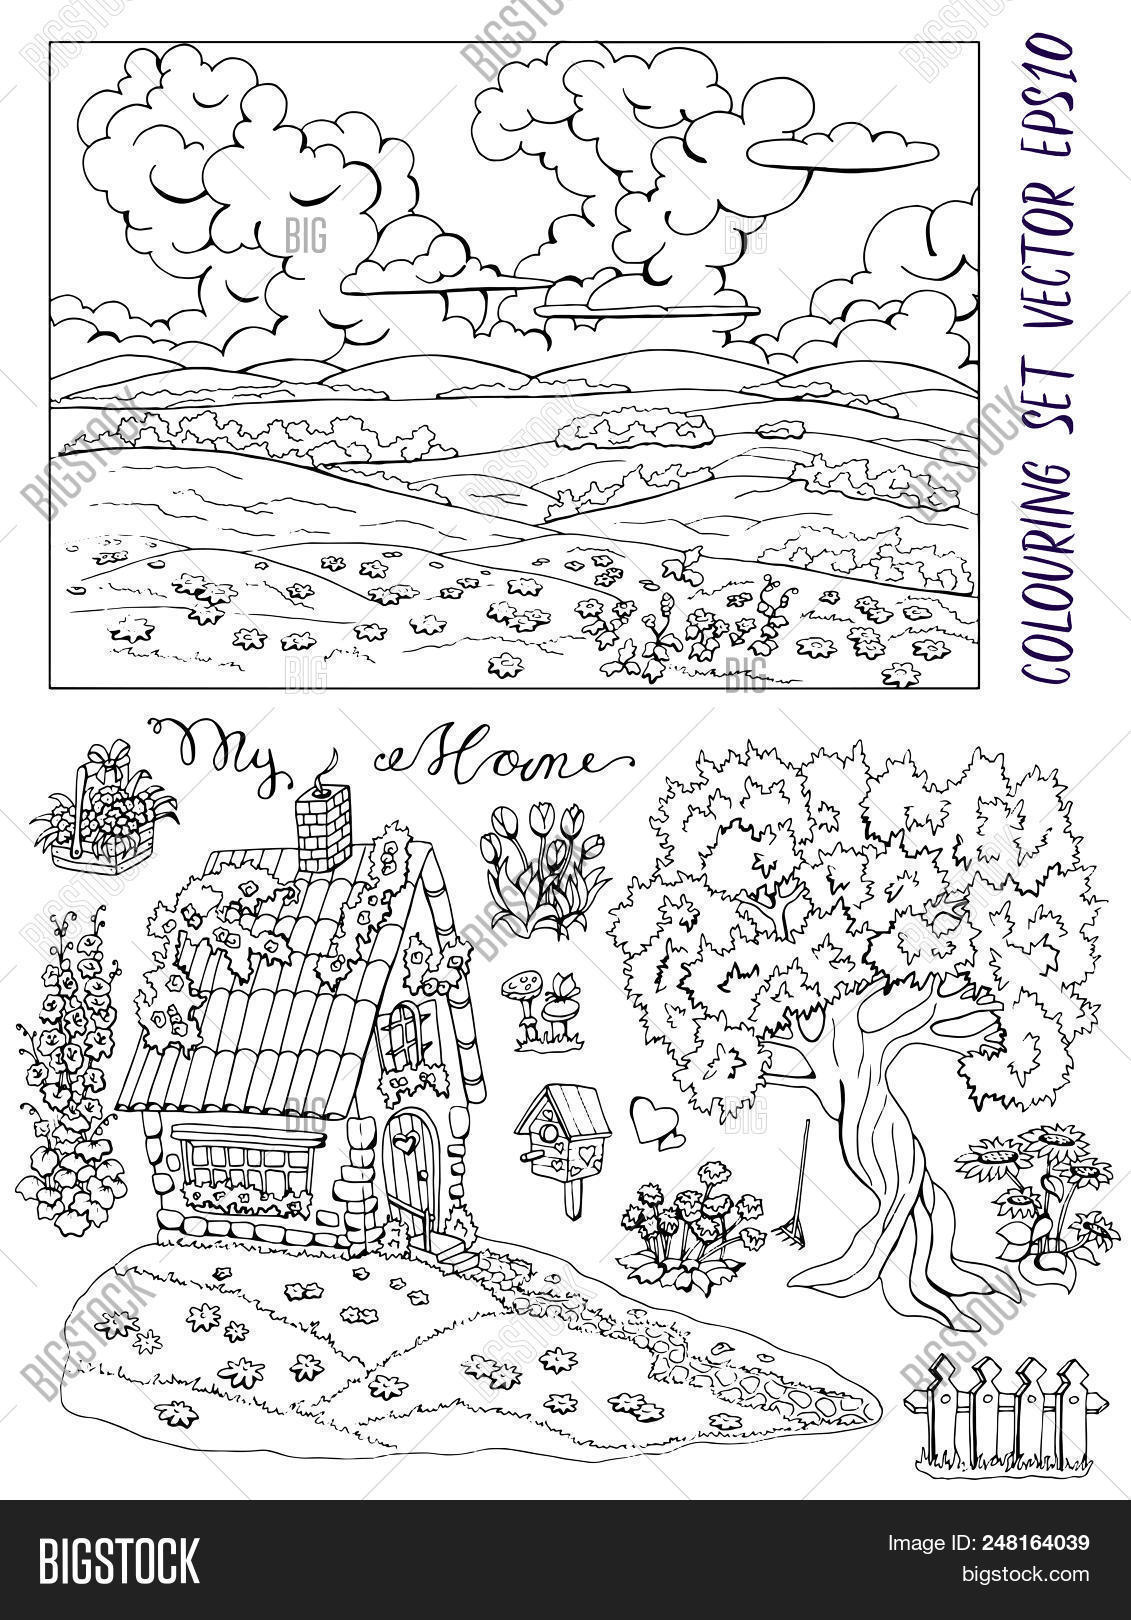 Coloring Page With Small Country Cottage Tree Flowers Landscape And Bird House